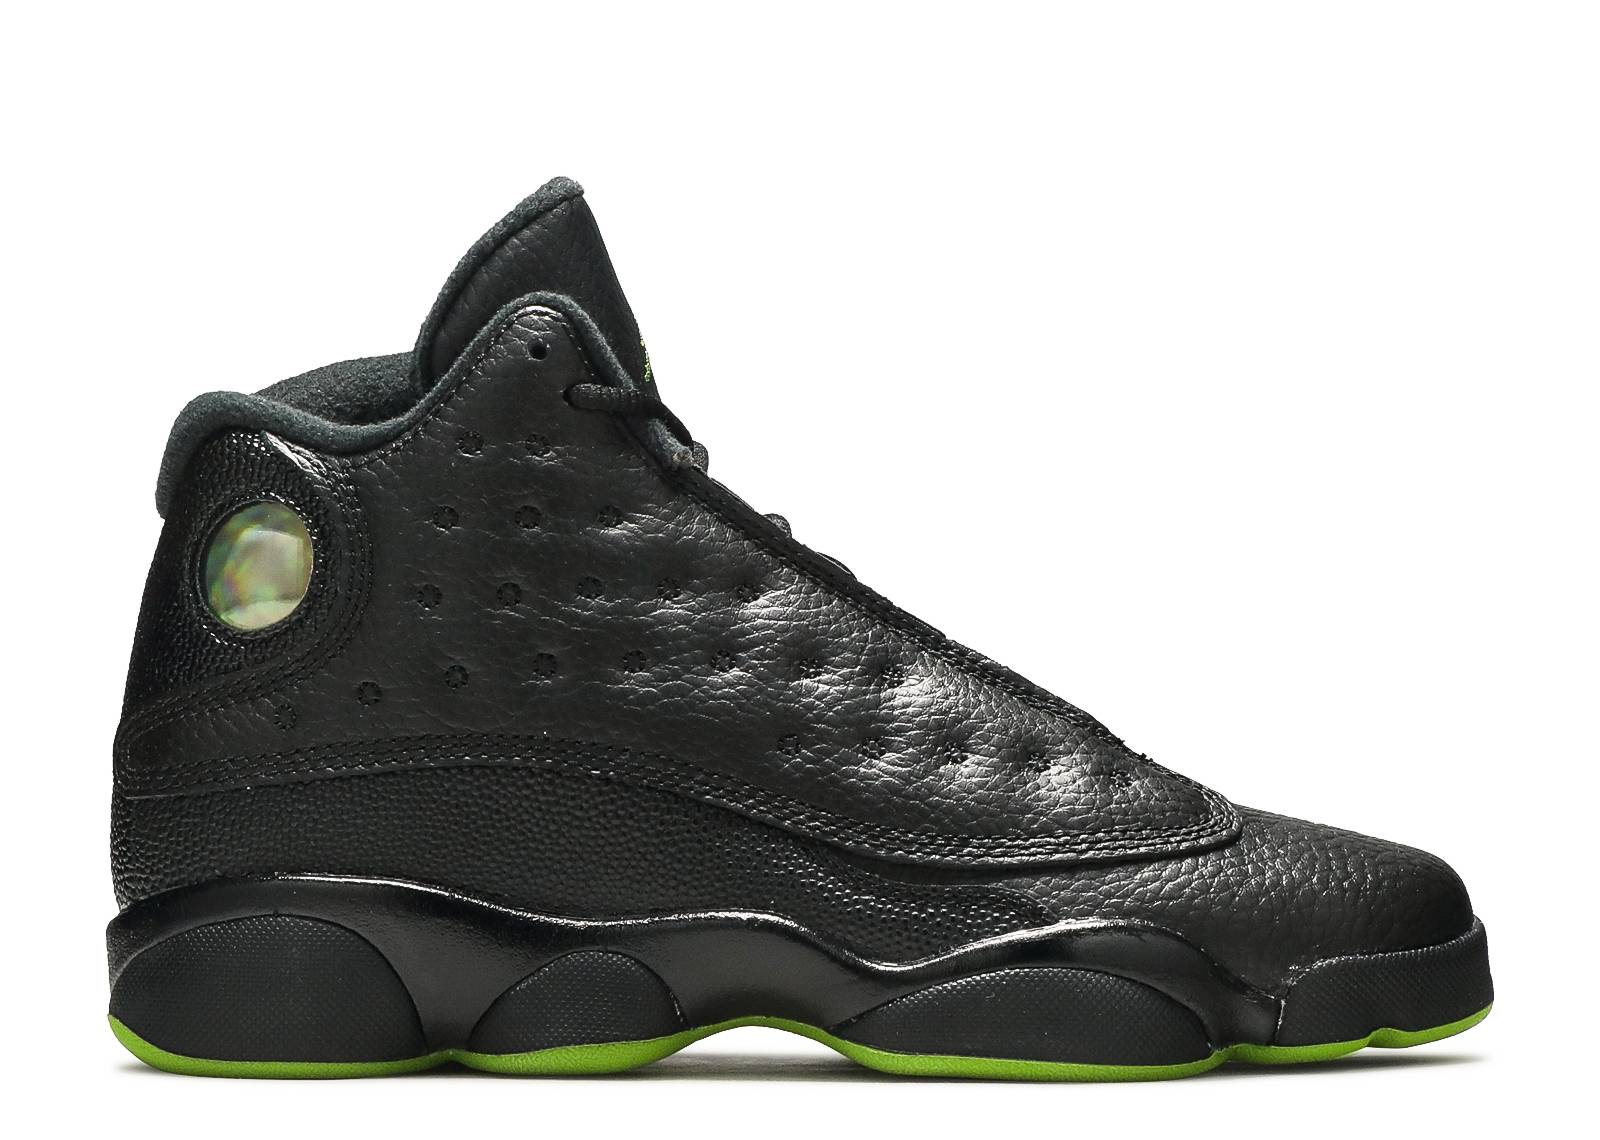 competitive price 6c9a9 a84f8 Air Jordan 13 (XIII) Shoes - Nike   Flight Club